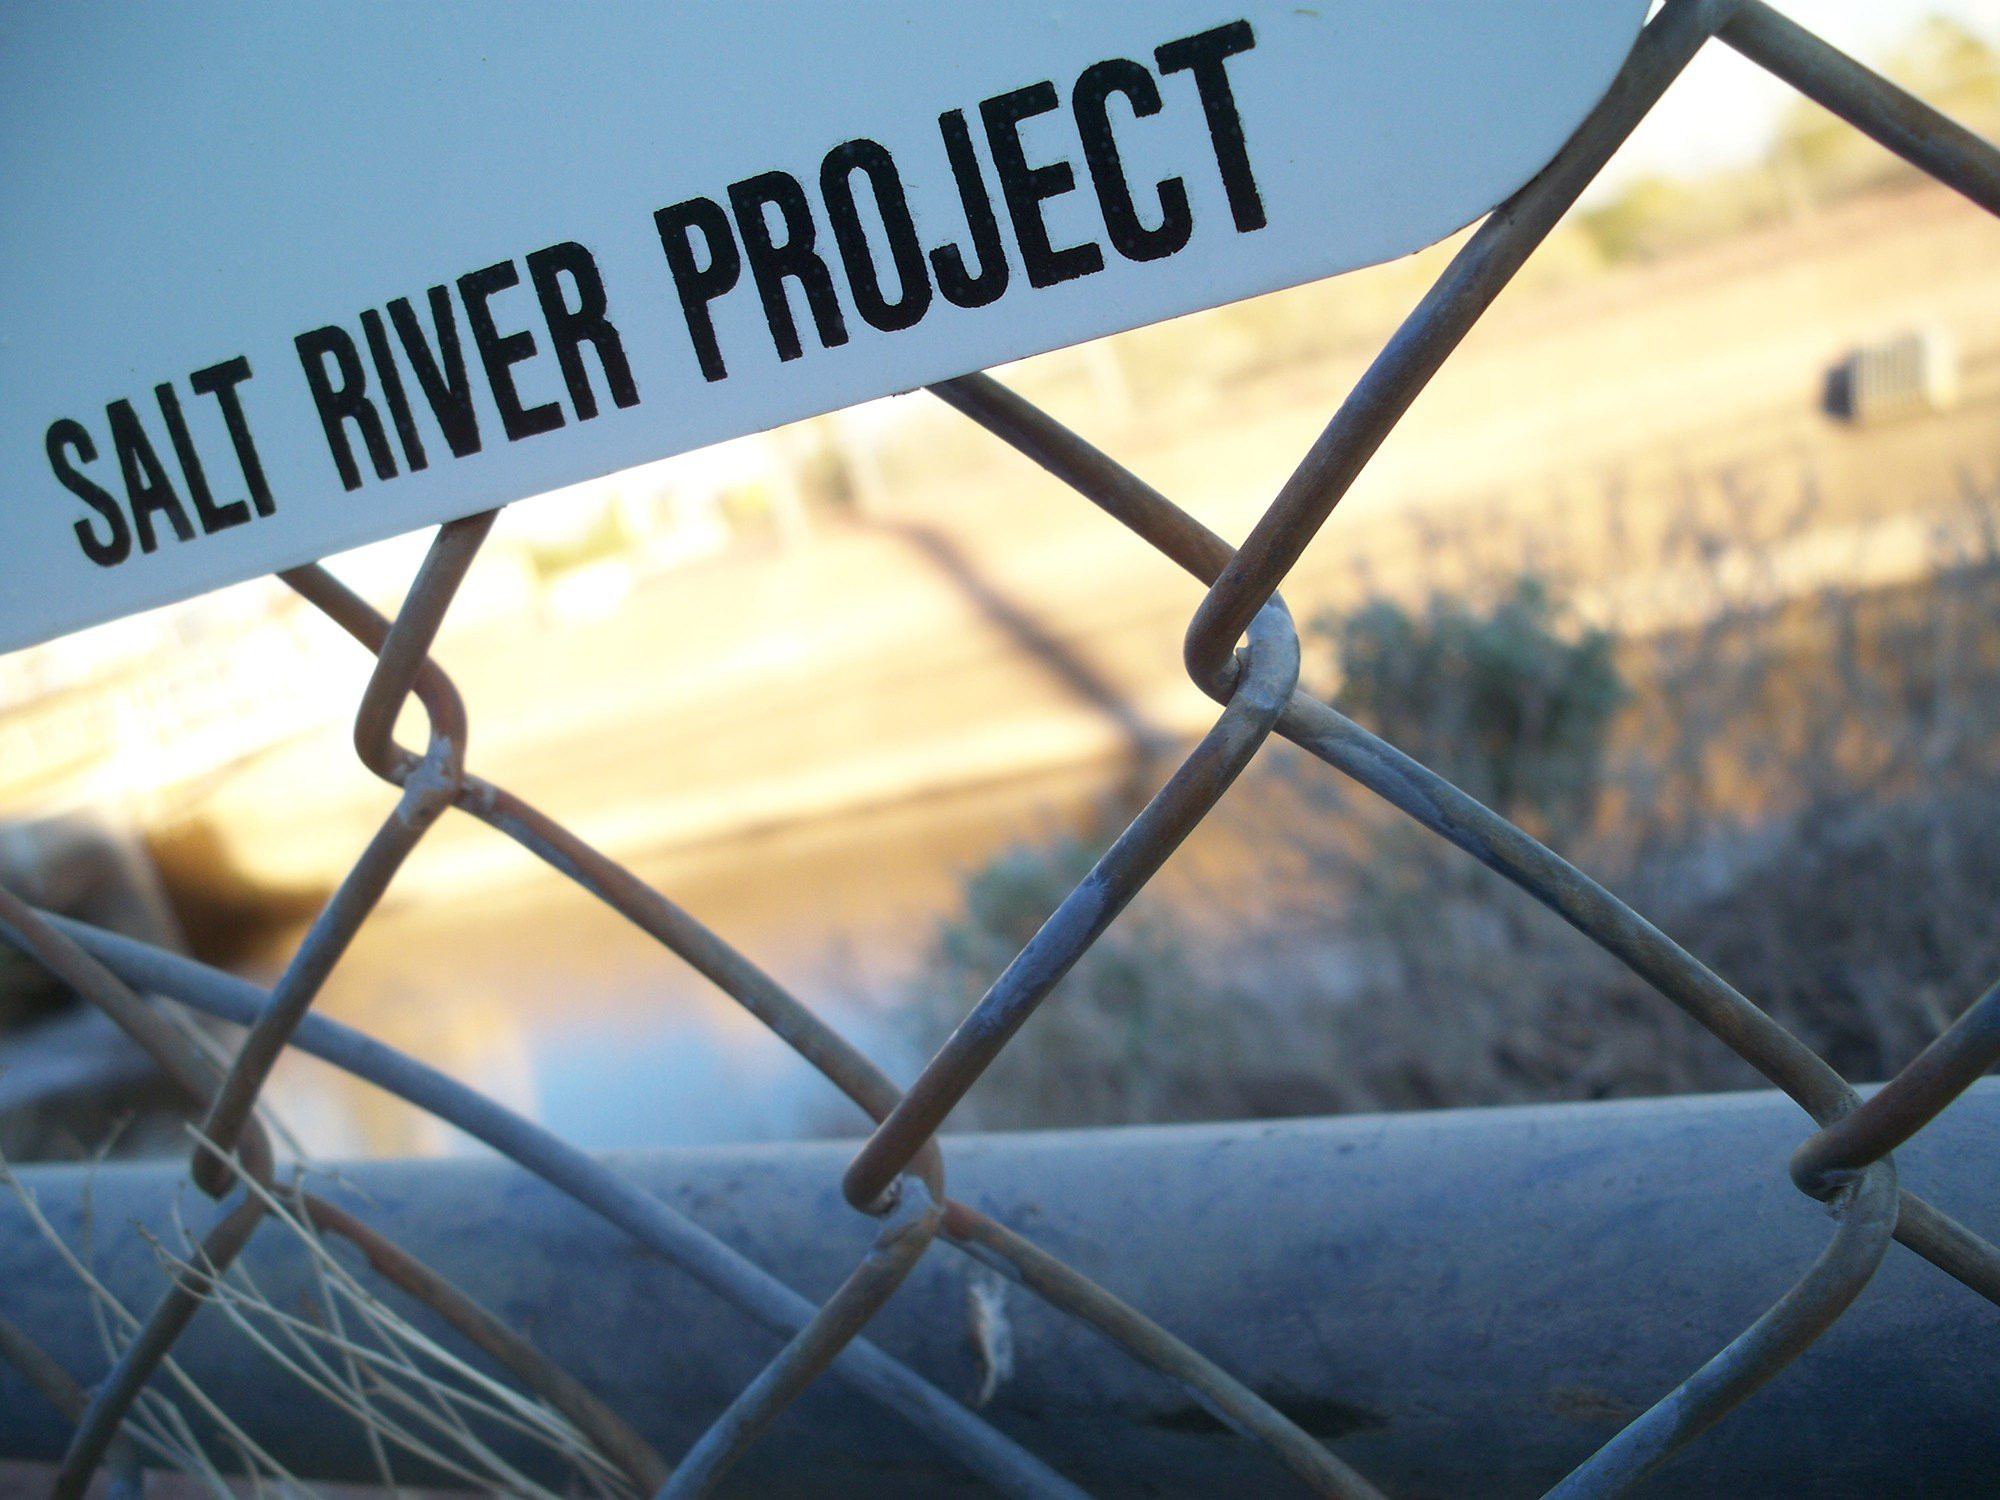 The Salt River Project got a failing grade for the transparency of its online financial records in a new report, which said more than half the 79 special districts nationwide that it studied failed. (Source: Brian Indrelunas/Creative Commons)